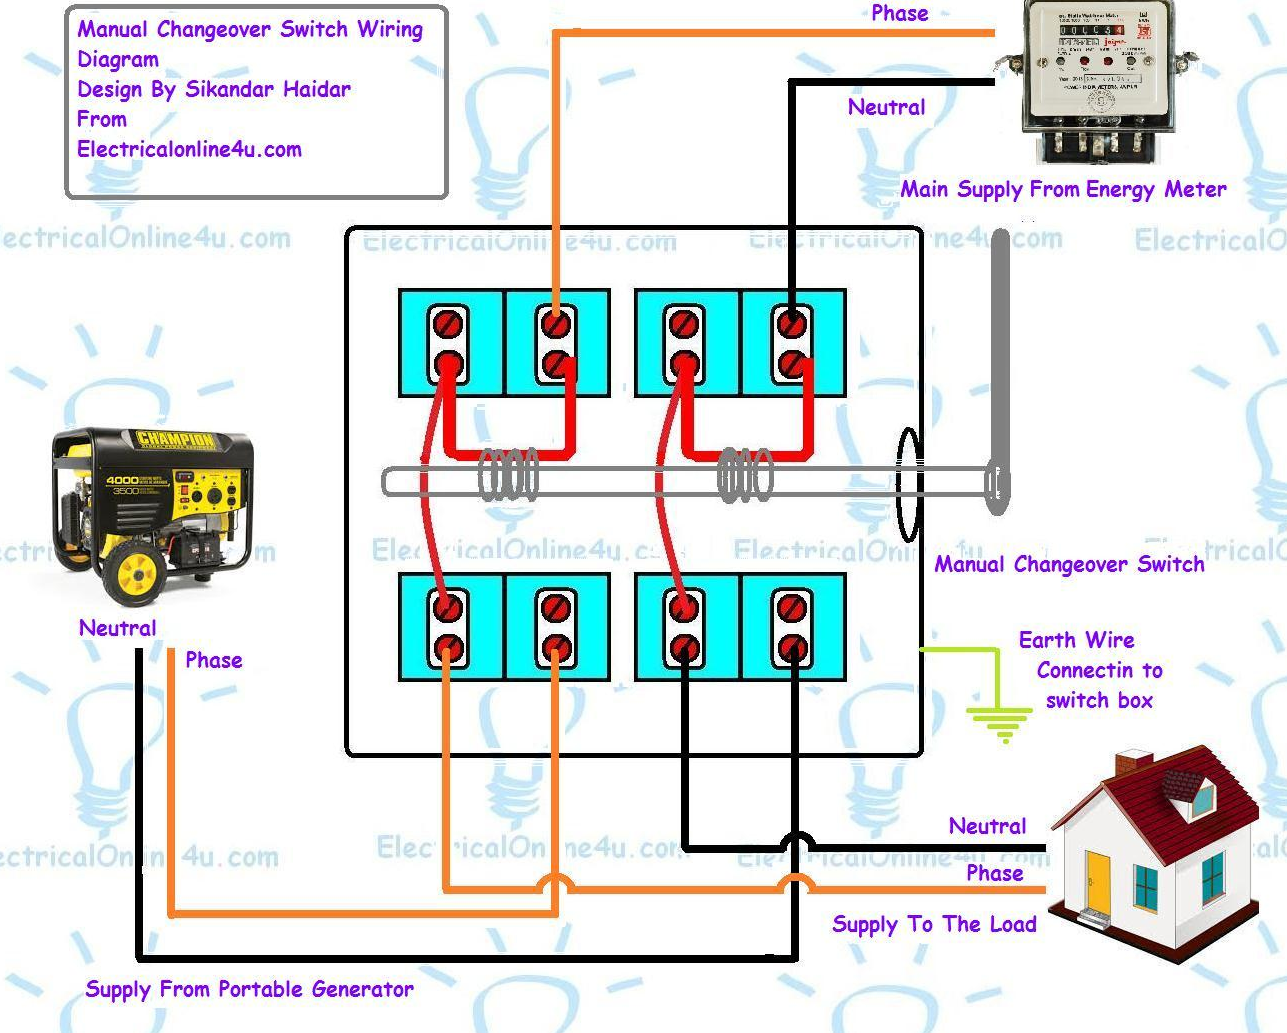 manual%2Bchangeover%2Bswitch%2Bwiring%2Bdiagram manual changeover switch wiring diagram for portable generator portable generator wiring schematic at aneh.co